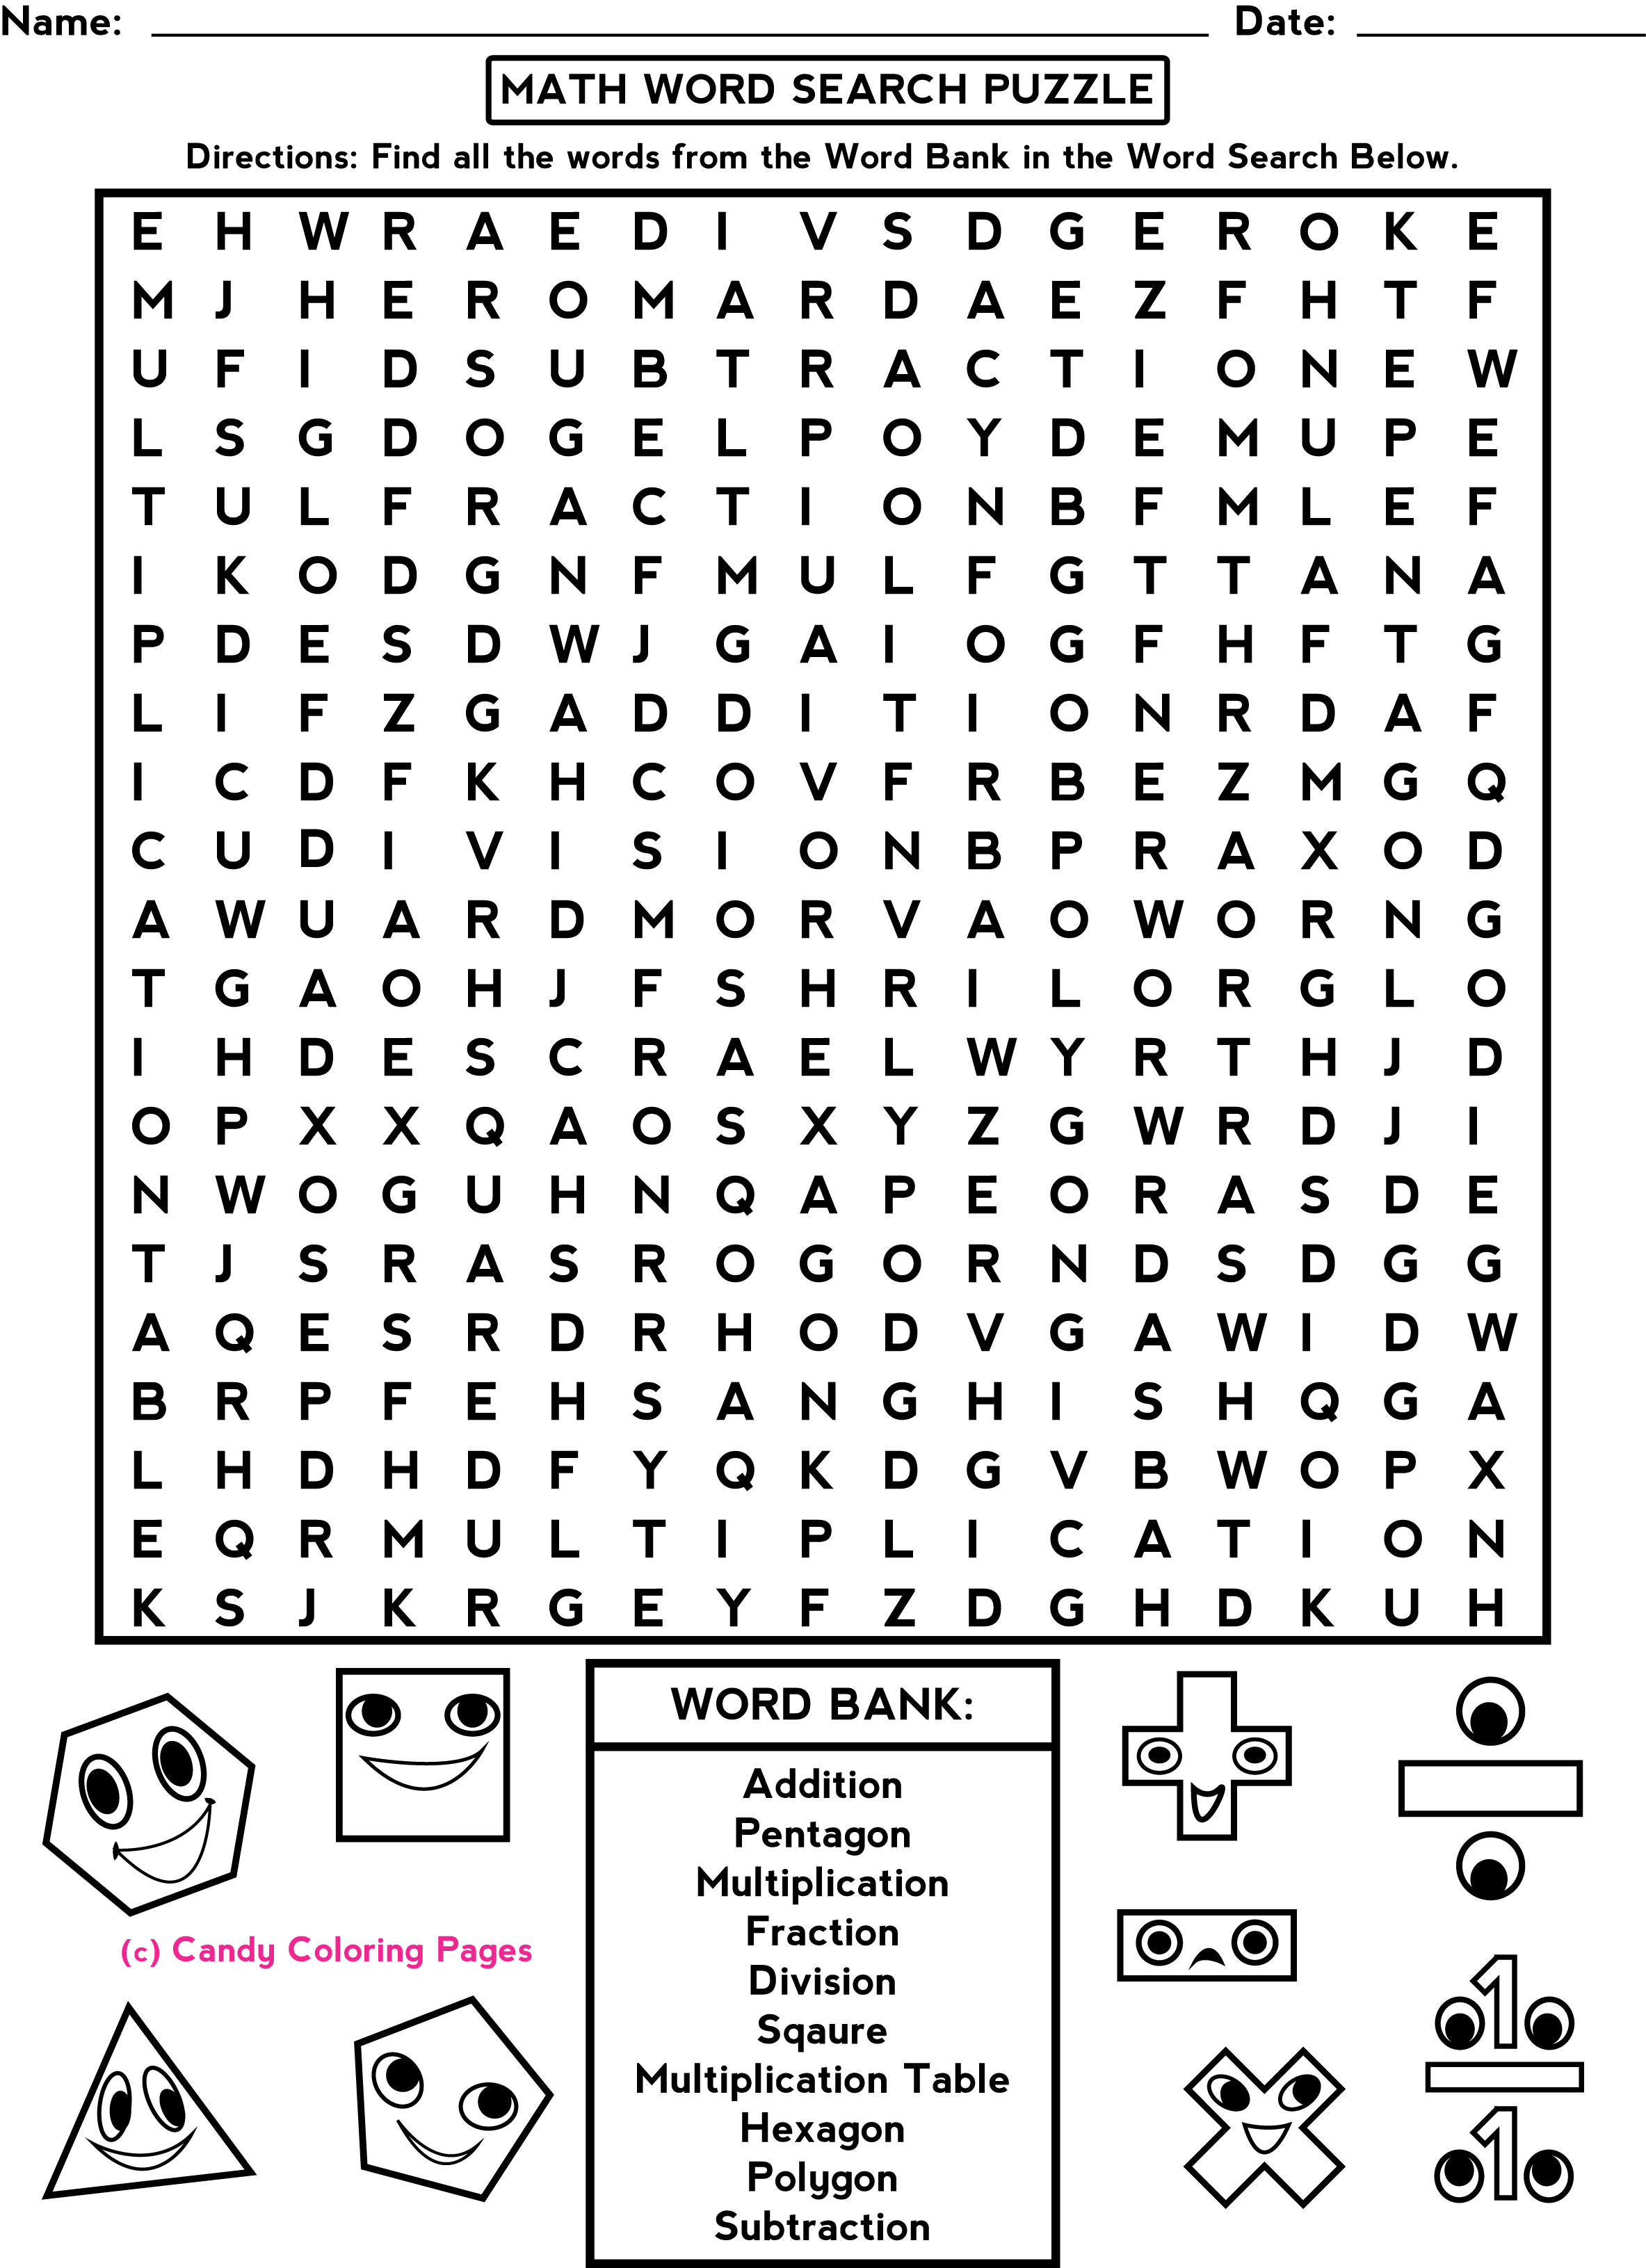 Collection Of Puzzle Worksheets For Middle School Download Them And Try To Solve Free Printable Math Worksheets Math Worksheets Printable Math Worksheets